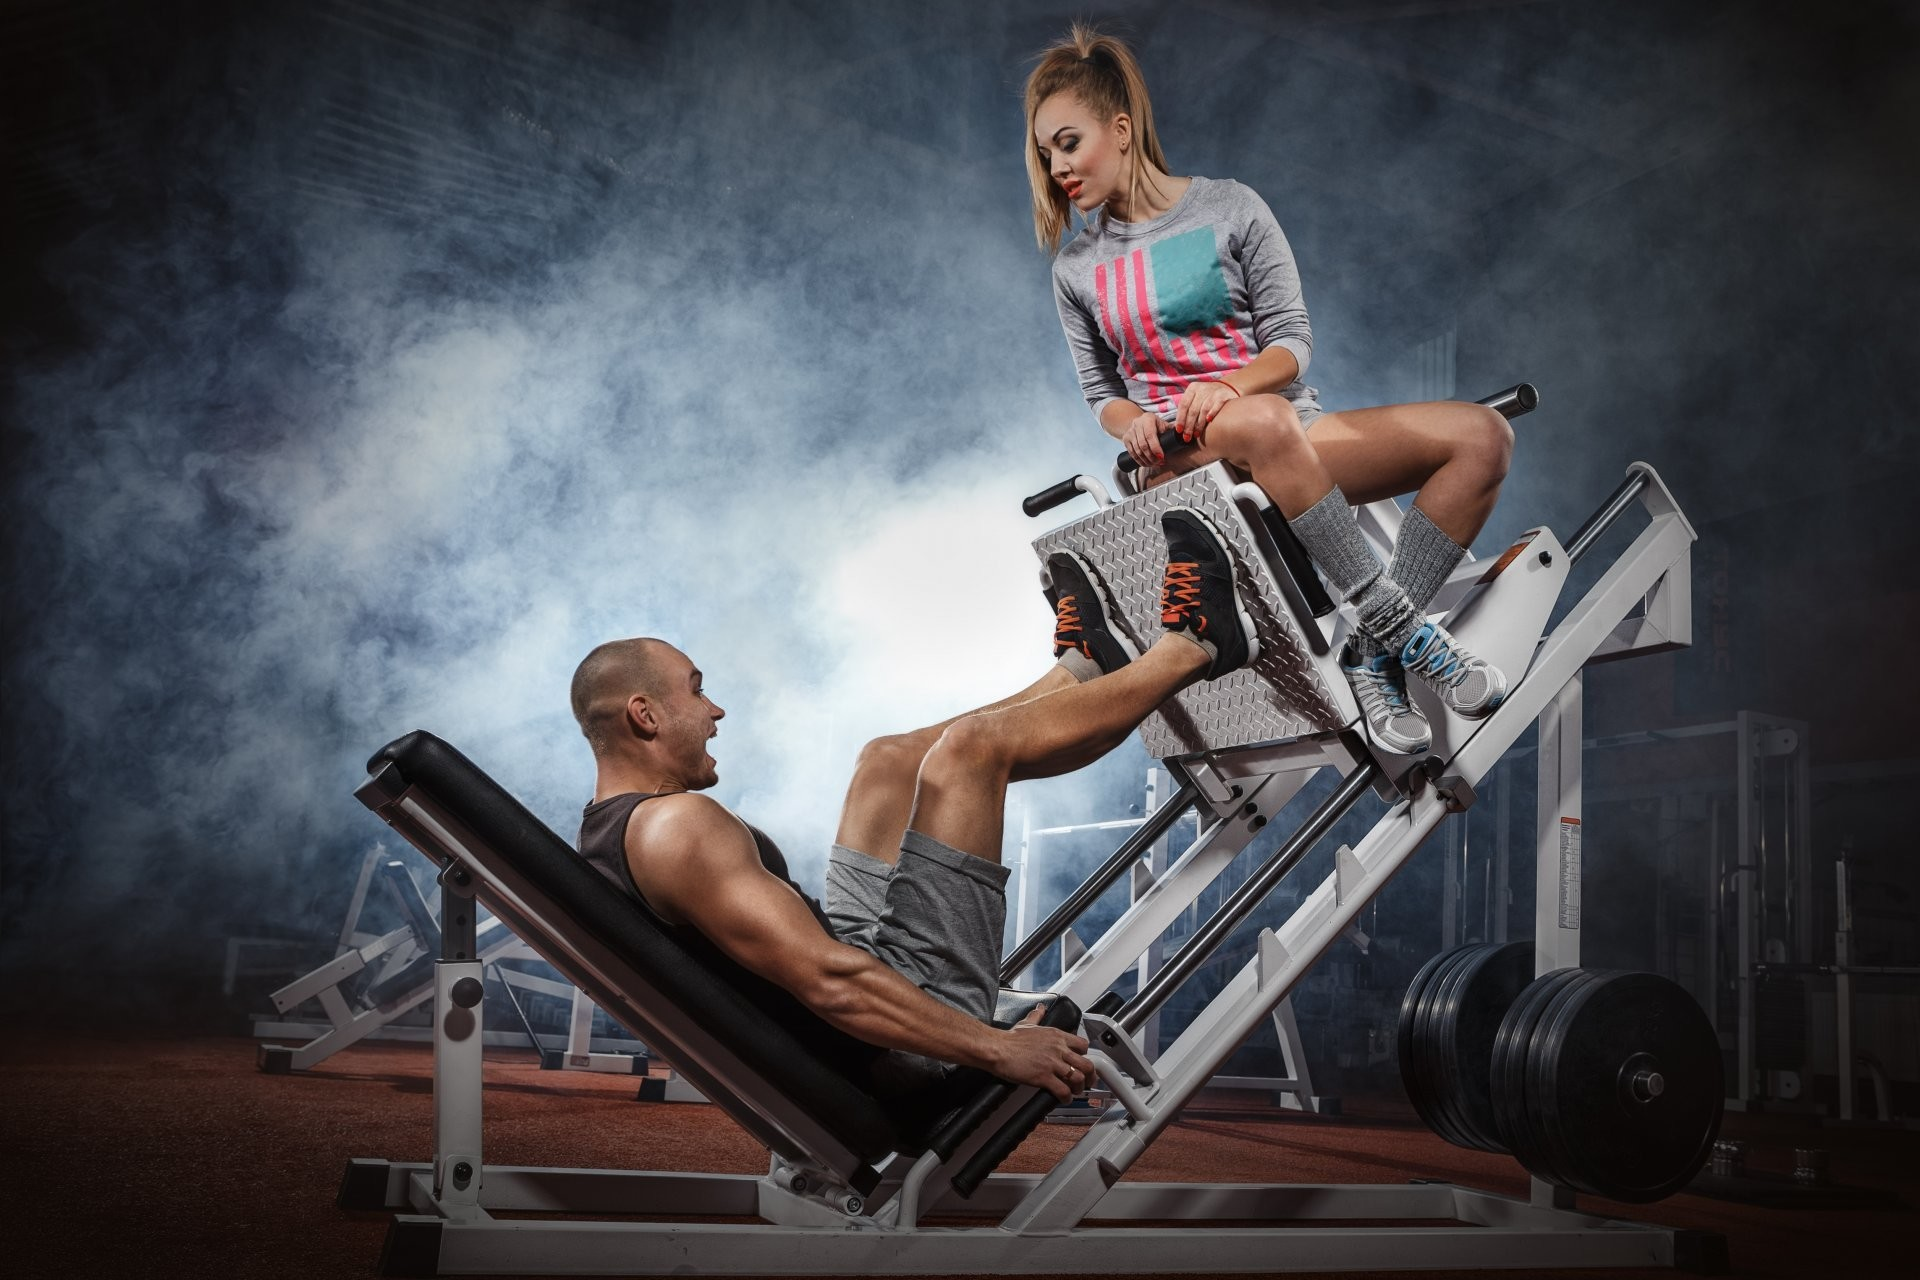 fitness workout couple legs training